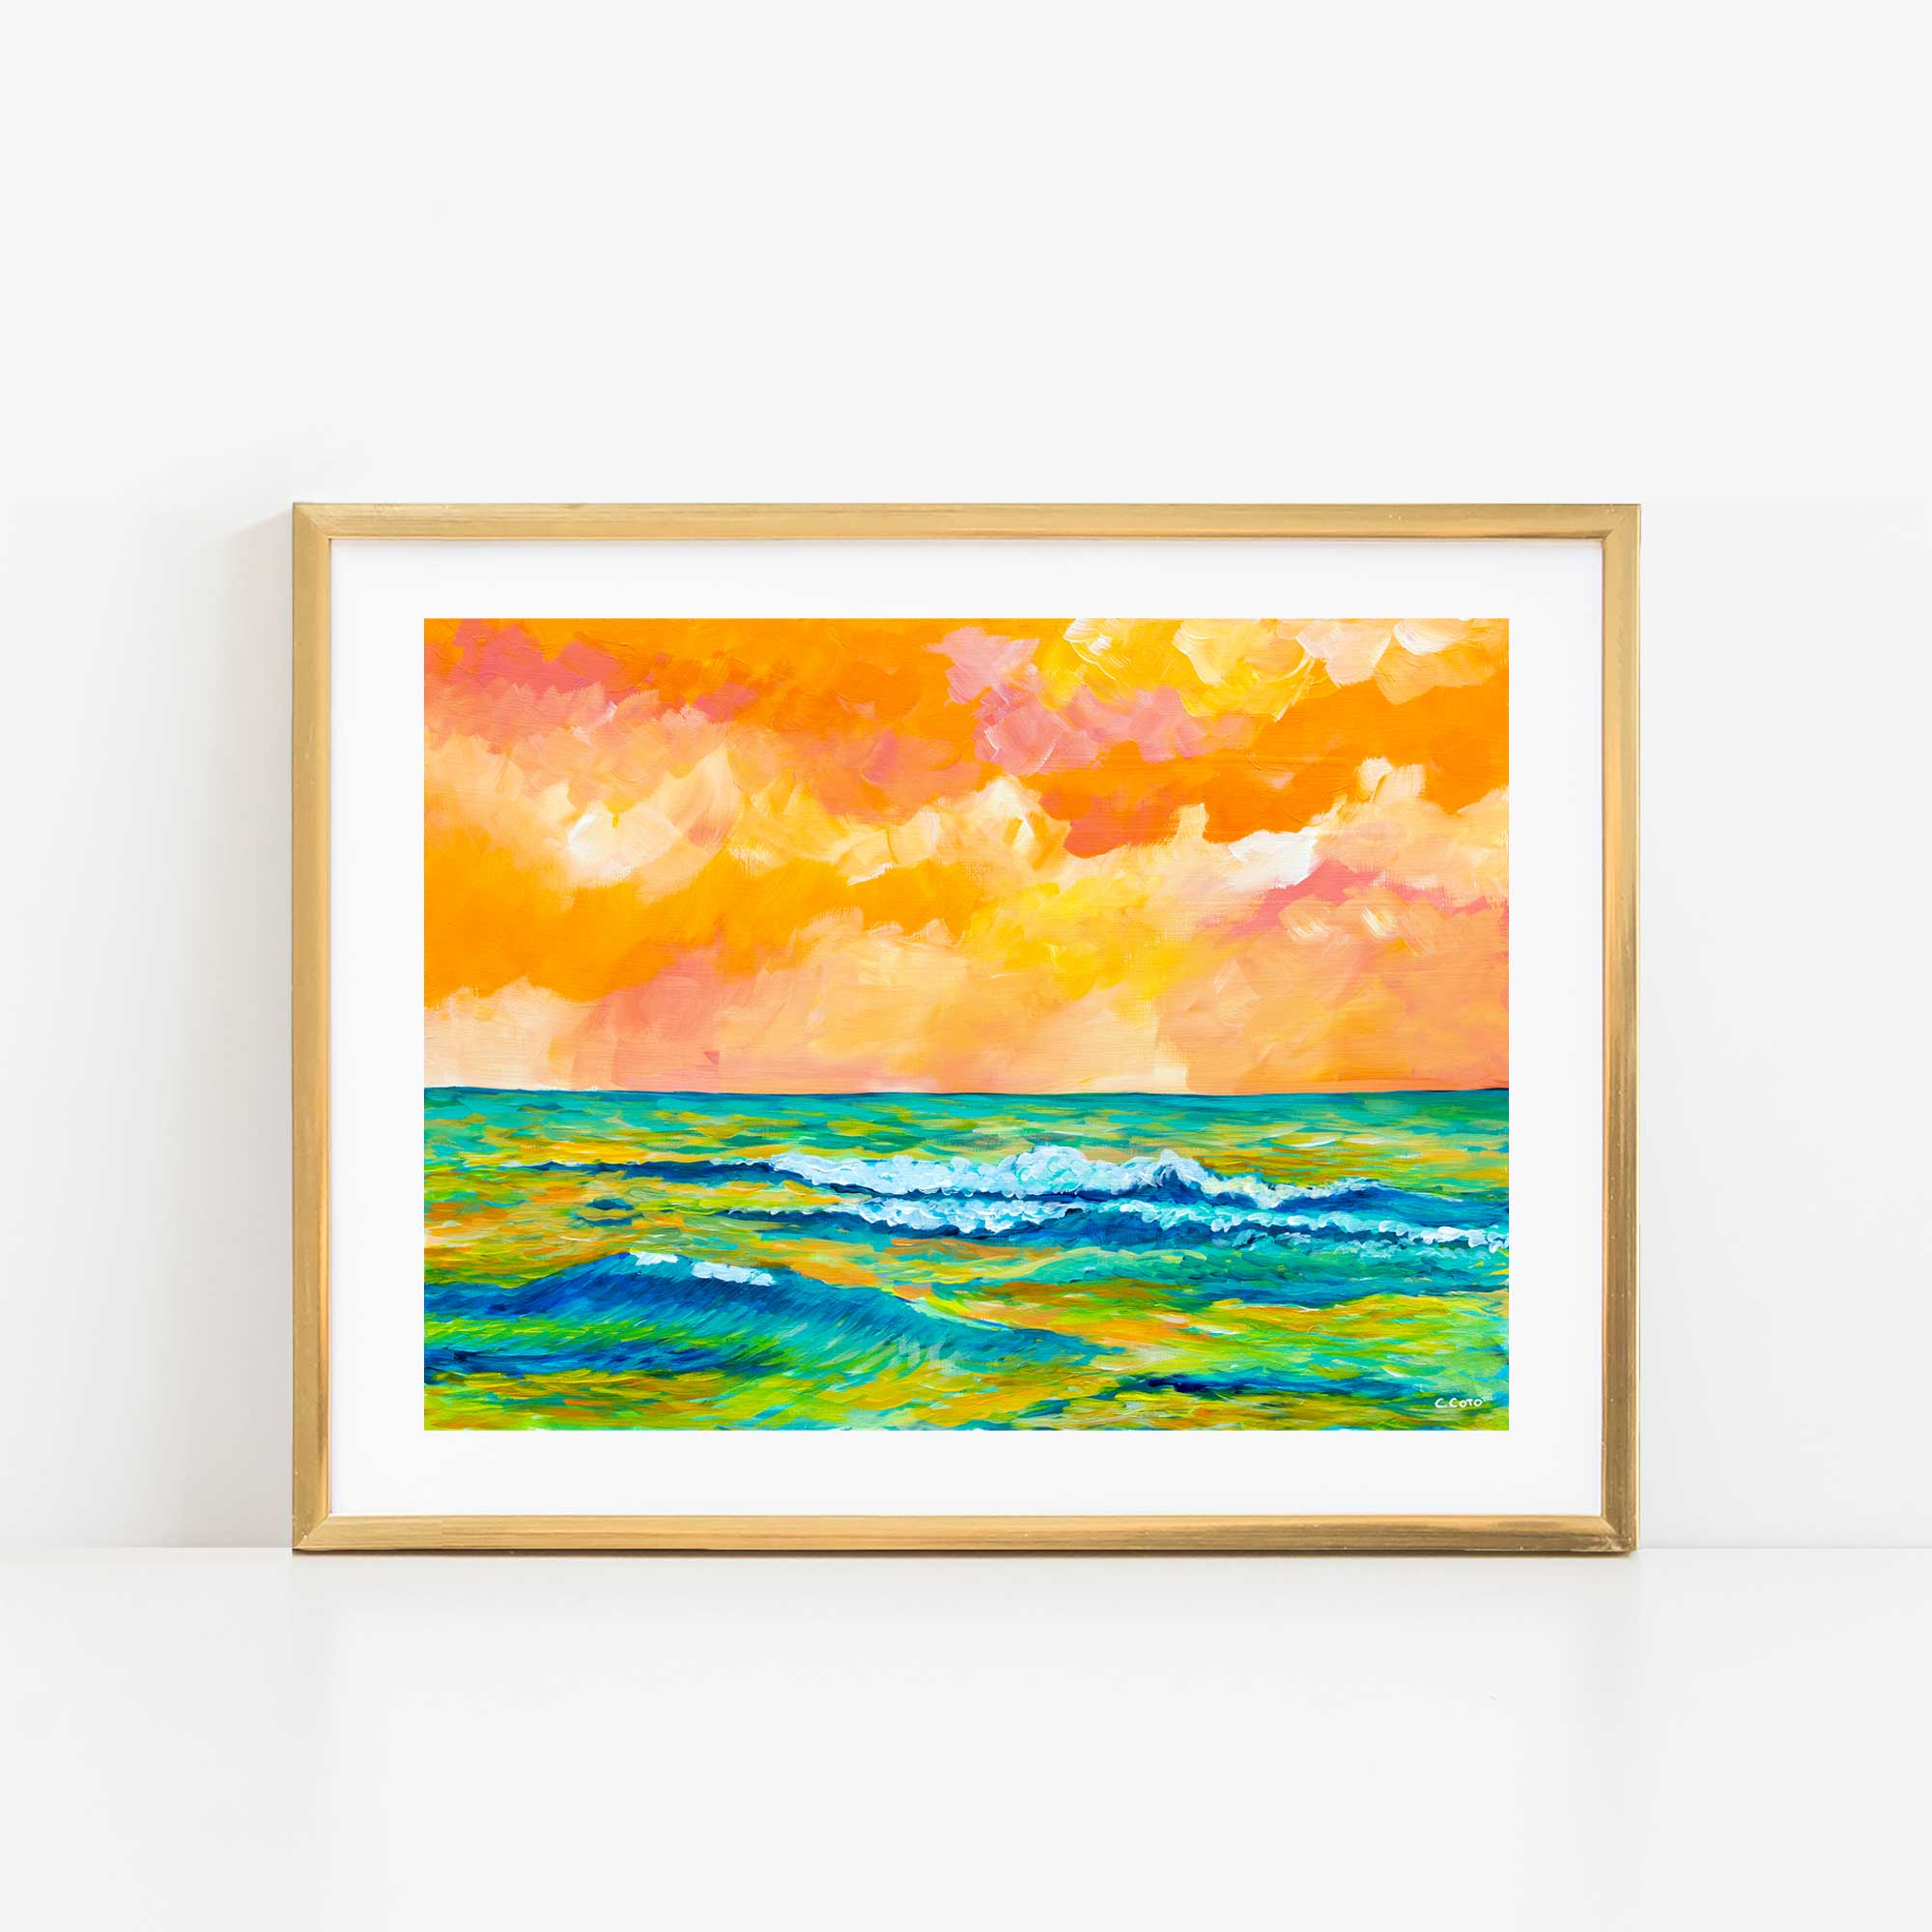 Simple Seascape XIII